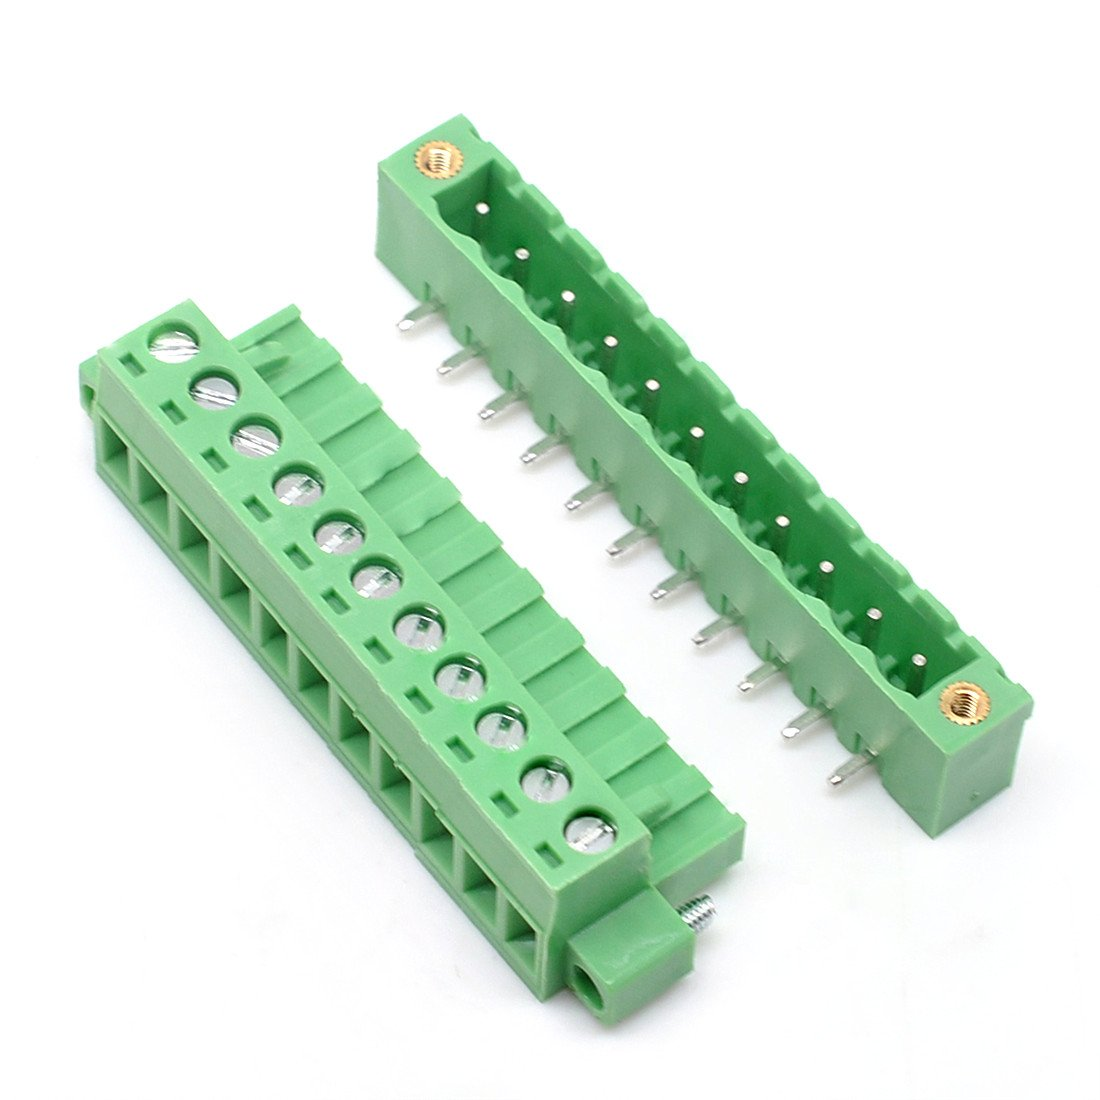 Willwin 10 Set 5.08mm Pitch Right Angle 10 Pin PCB Pluggable Terminal Blocks Connectors Green